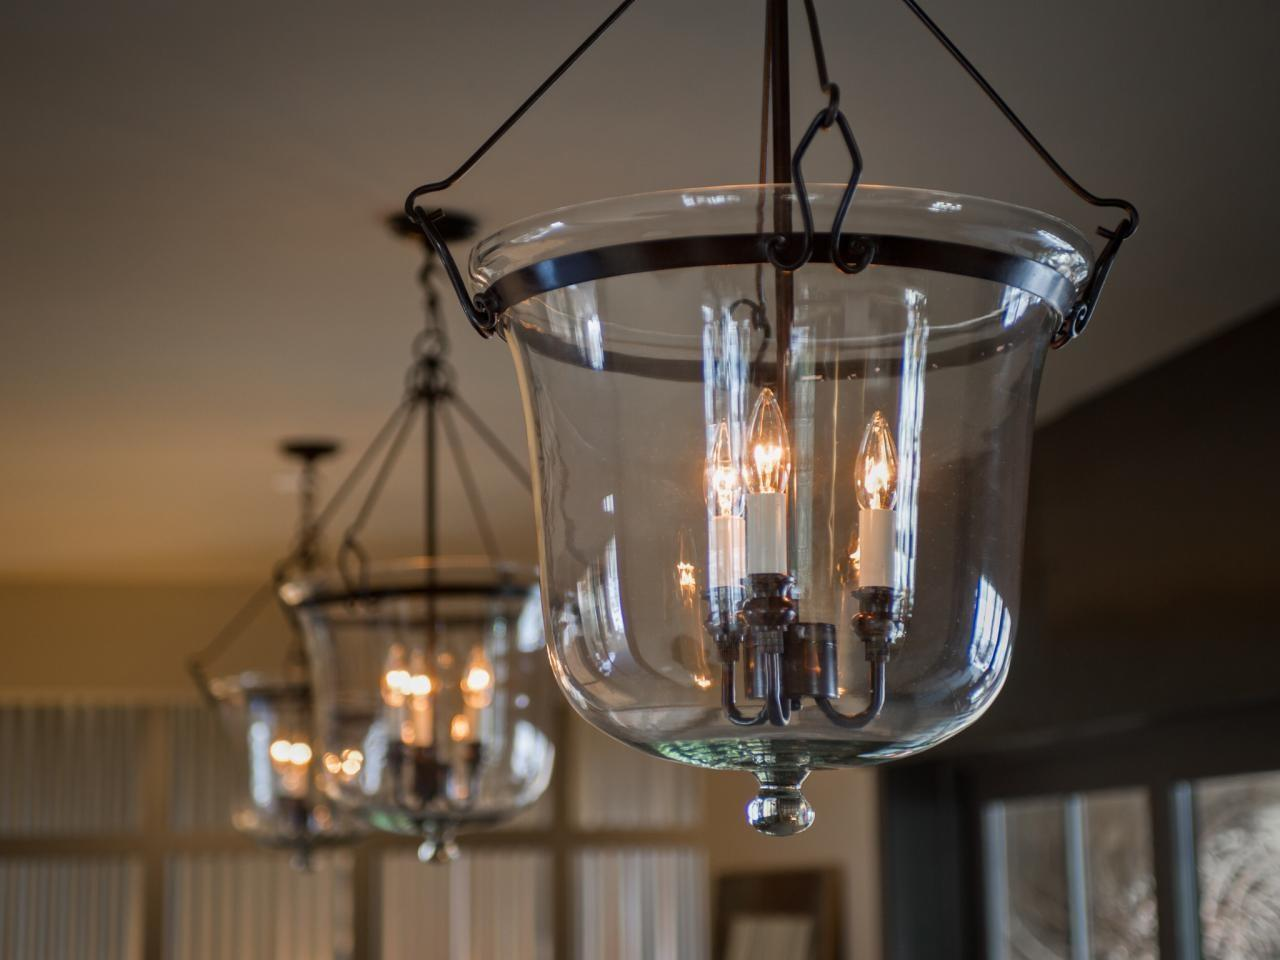 Tips Hanging Light Fixtures Your Home Themocracy